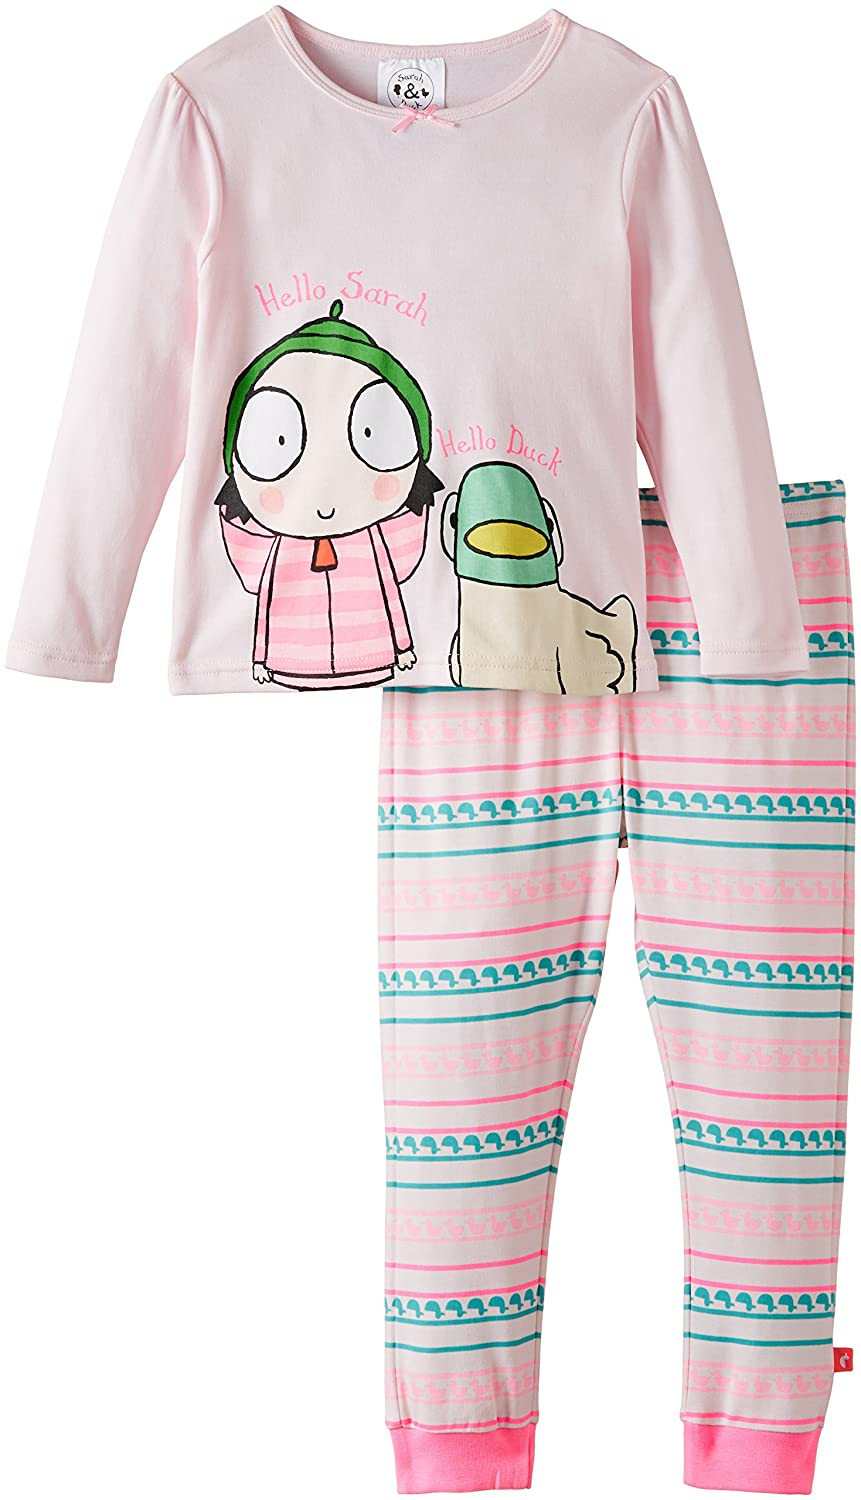 Sarah & Duck Girl's Pyjama Set SDAC2501